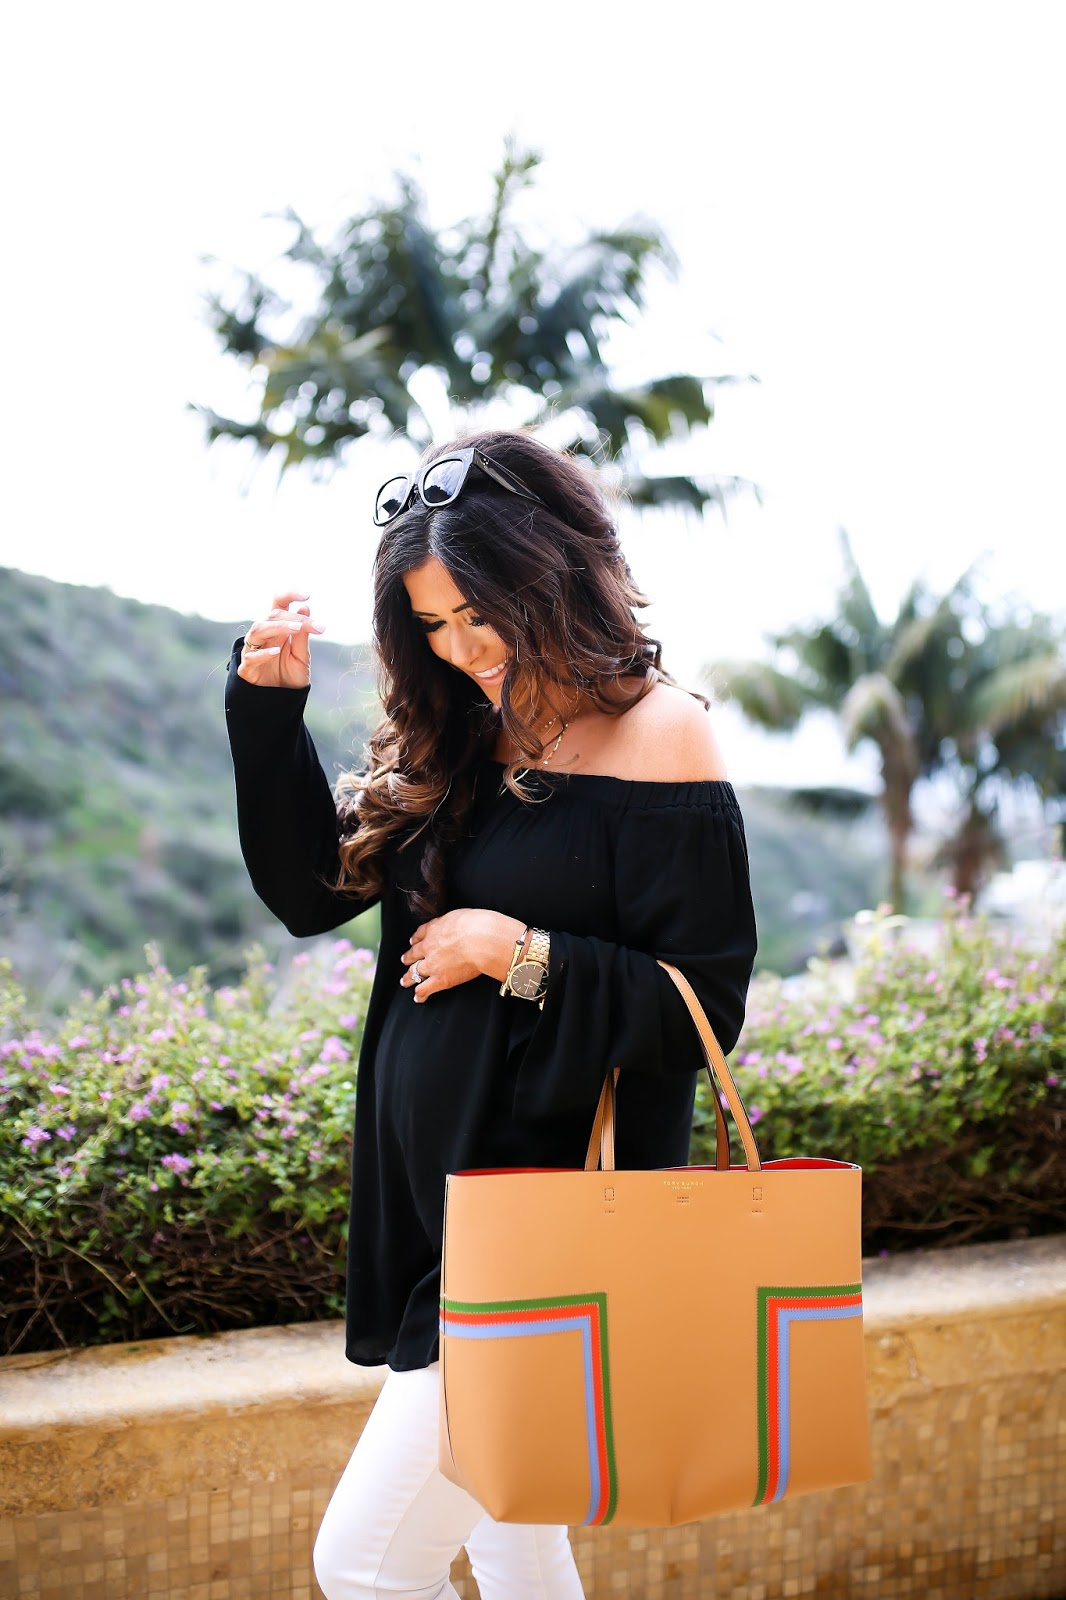 Emily Gemma, The sweetest thing blog, Nordstrom off the shoulder top, tory burch leather tote black tan, marc fisher wedges review, nordstrom wedges spring, chloe dupe wedges, marc fisher wedges adalyn in saddle, Lana jewelry 14k necklace, black ripped maternity jeans, DL1961 maternity jeans, laguna beach fashion blog, laguna beach best places to eat, montage laguna beach The Loft review, spring fashion trends 2017, spring fashion pinterest, spring outfits pinterest, gucci marmot medium white bag, nixon gold watch with black face, the styled collection bracelets, spring outfit ideas with off the shoulder tops, laguna beach blog review, pregnant blogger, spring outfits for expecting moms, pregnant blogger outfits, maternity fashion blog